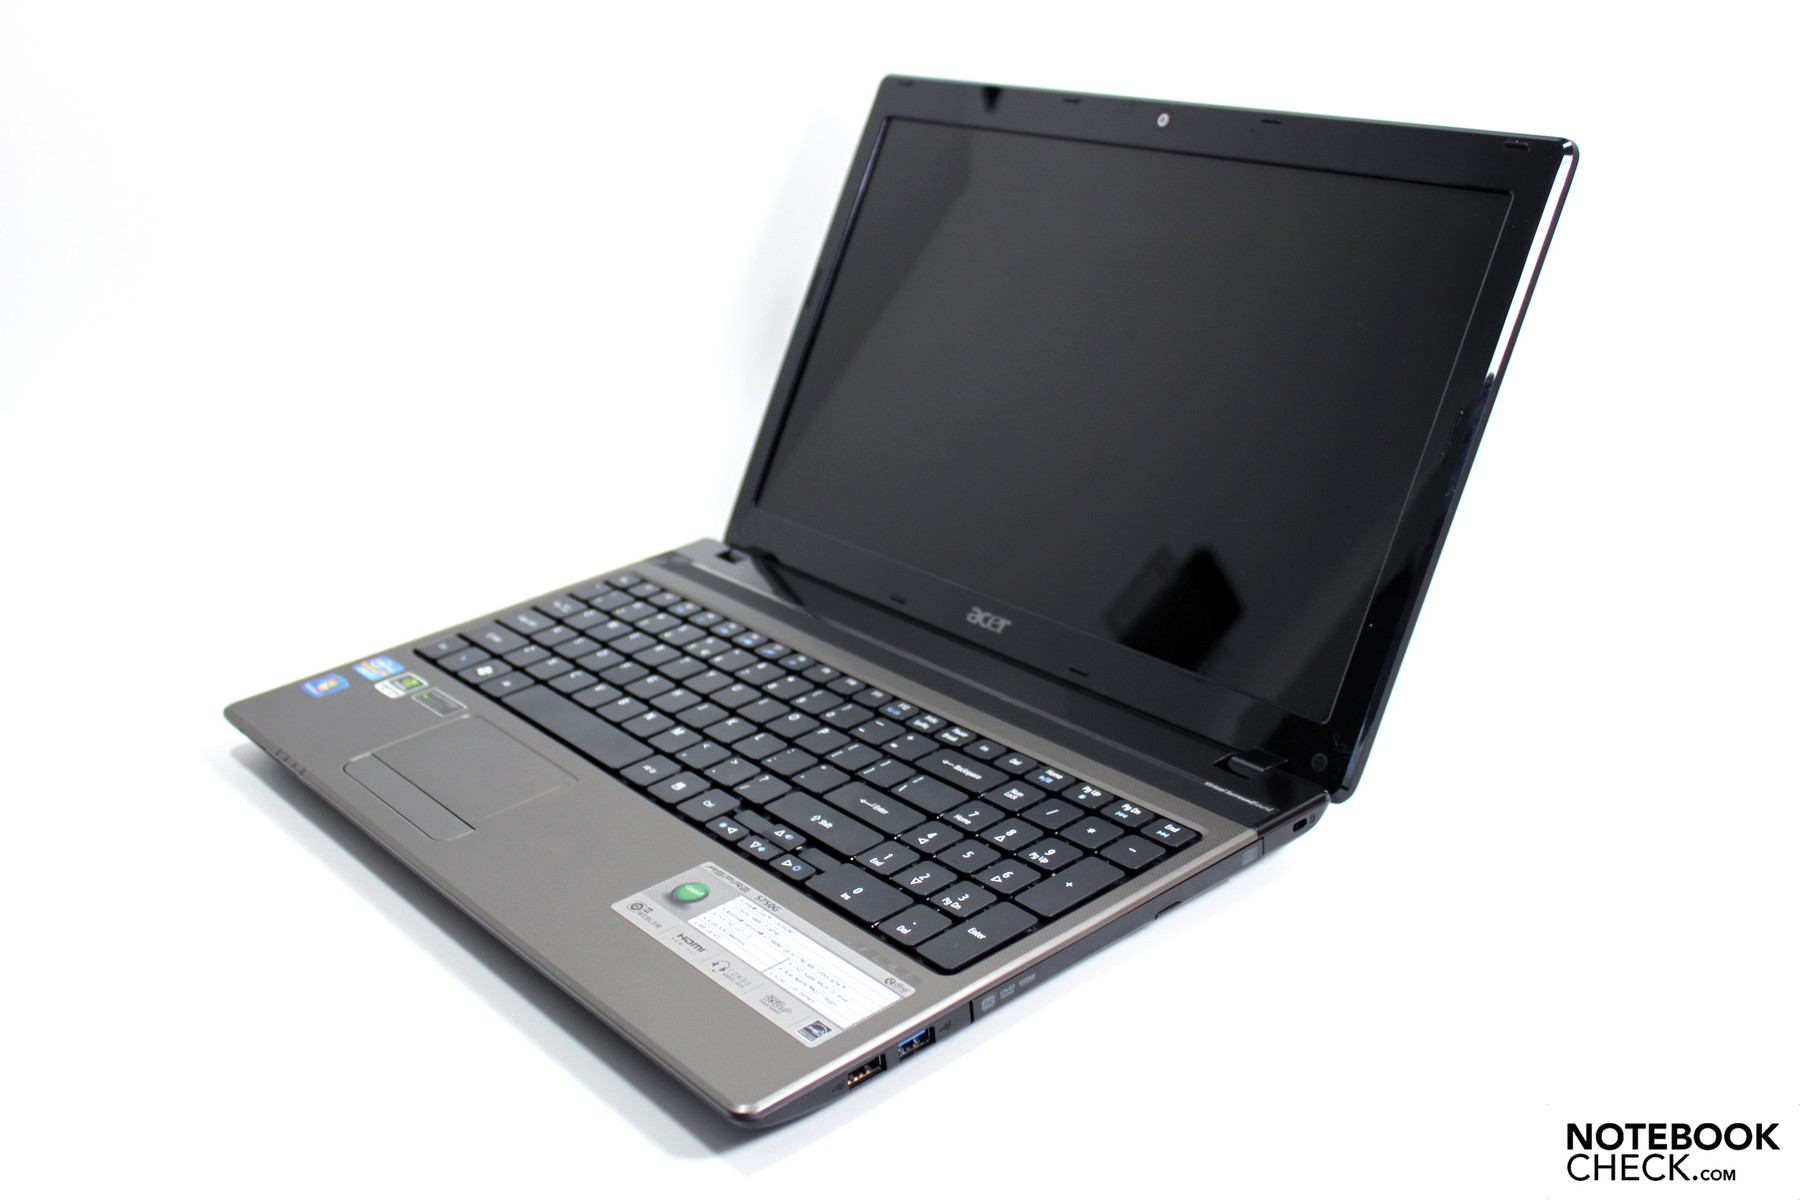 ACER ASPIRE 5750G WIFI DRIVERS FOR MAC DOWNLOAD